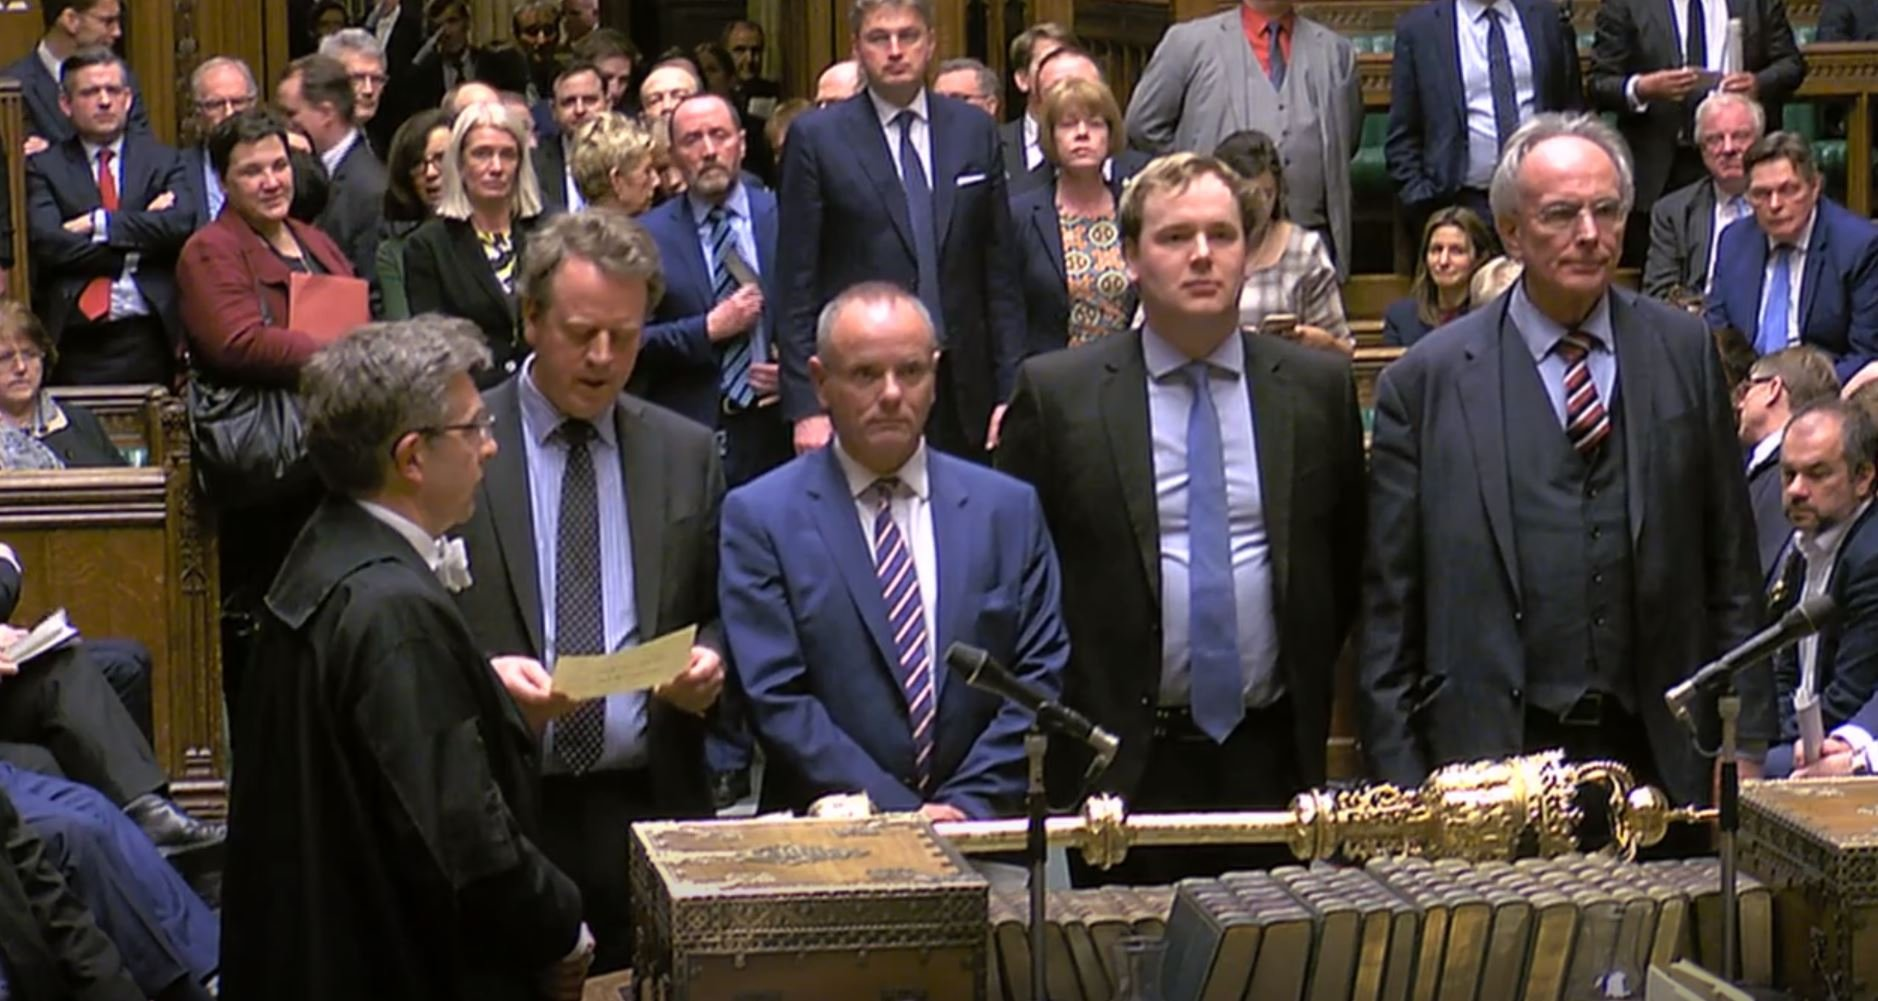 MPs announcing the result of the Brexit vote on Thursday, where the motion to allow the Prime Minister to request a one-off extension ending June 30 was passed by 412 votes to 202. PRESS ASSOCIATION Photo. Picture date: Thursday March 14, 2019. See PA story POLITICS Brexit. Photo credit should read: House of Commons/PA Wire